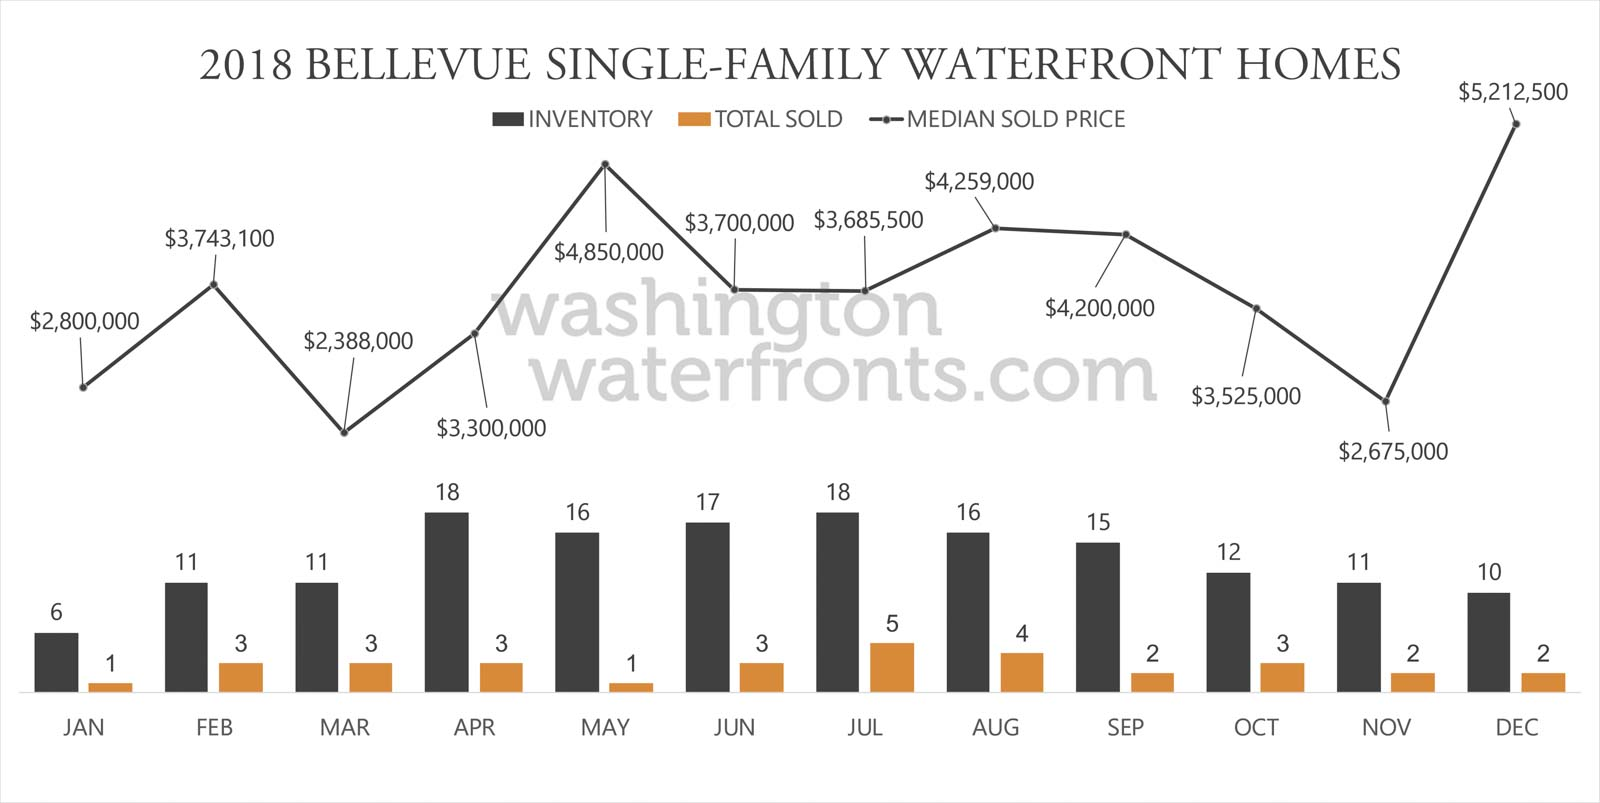 Bellevue Waterfront Inventory